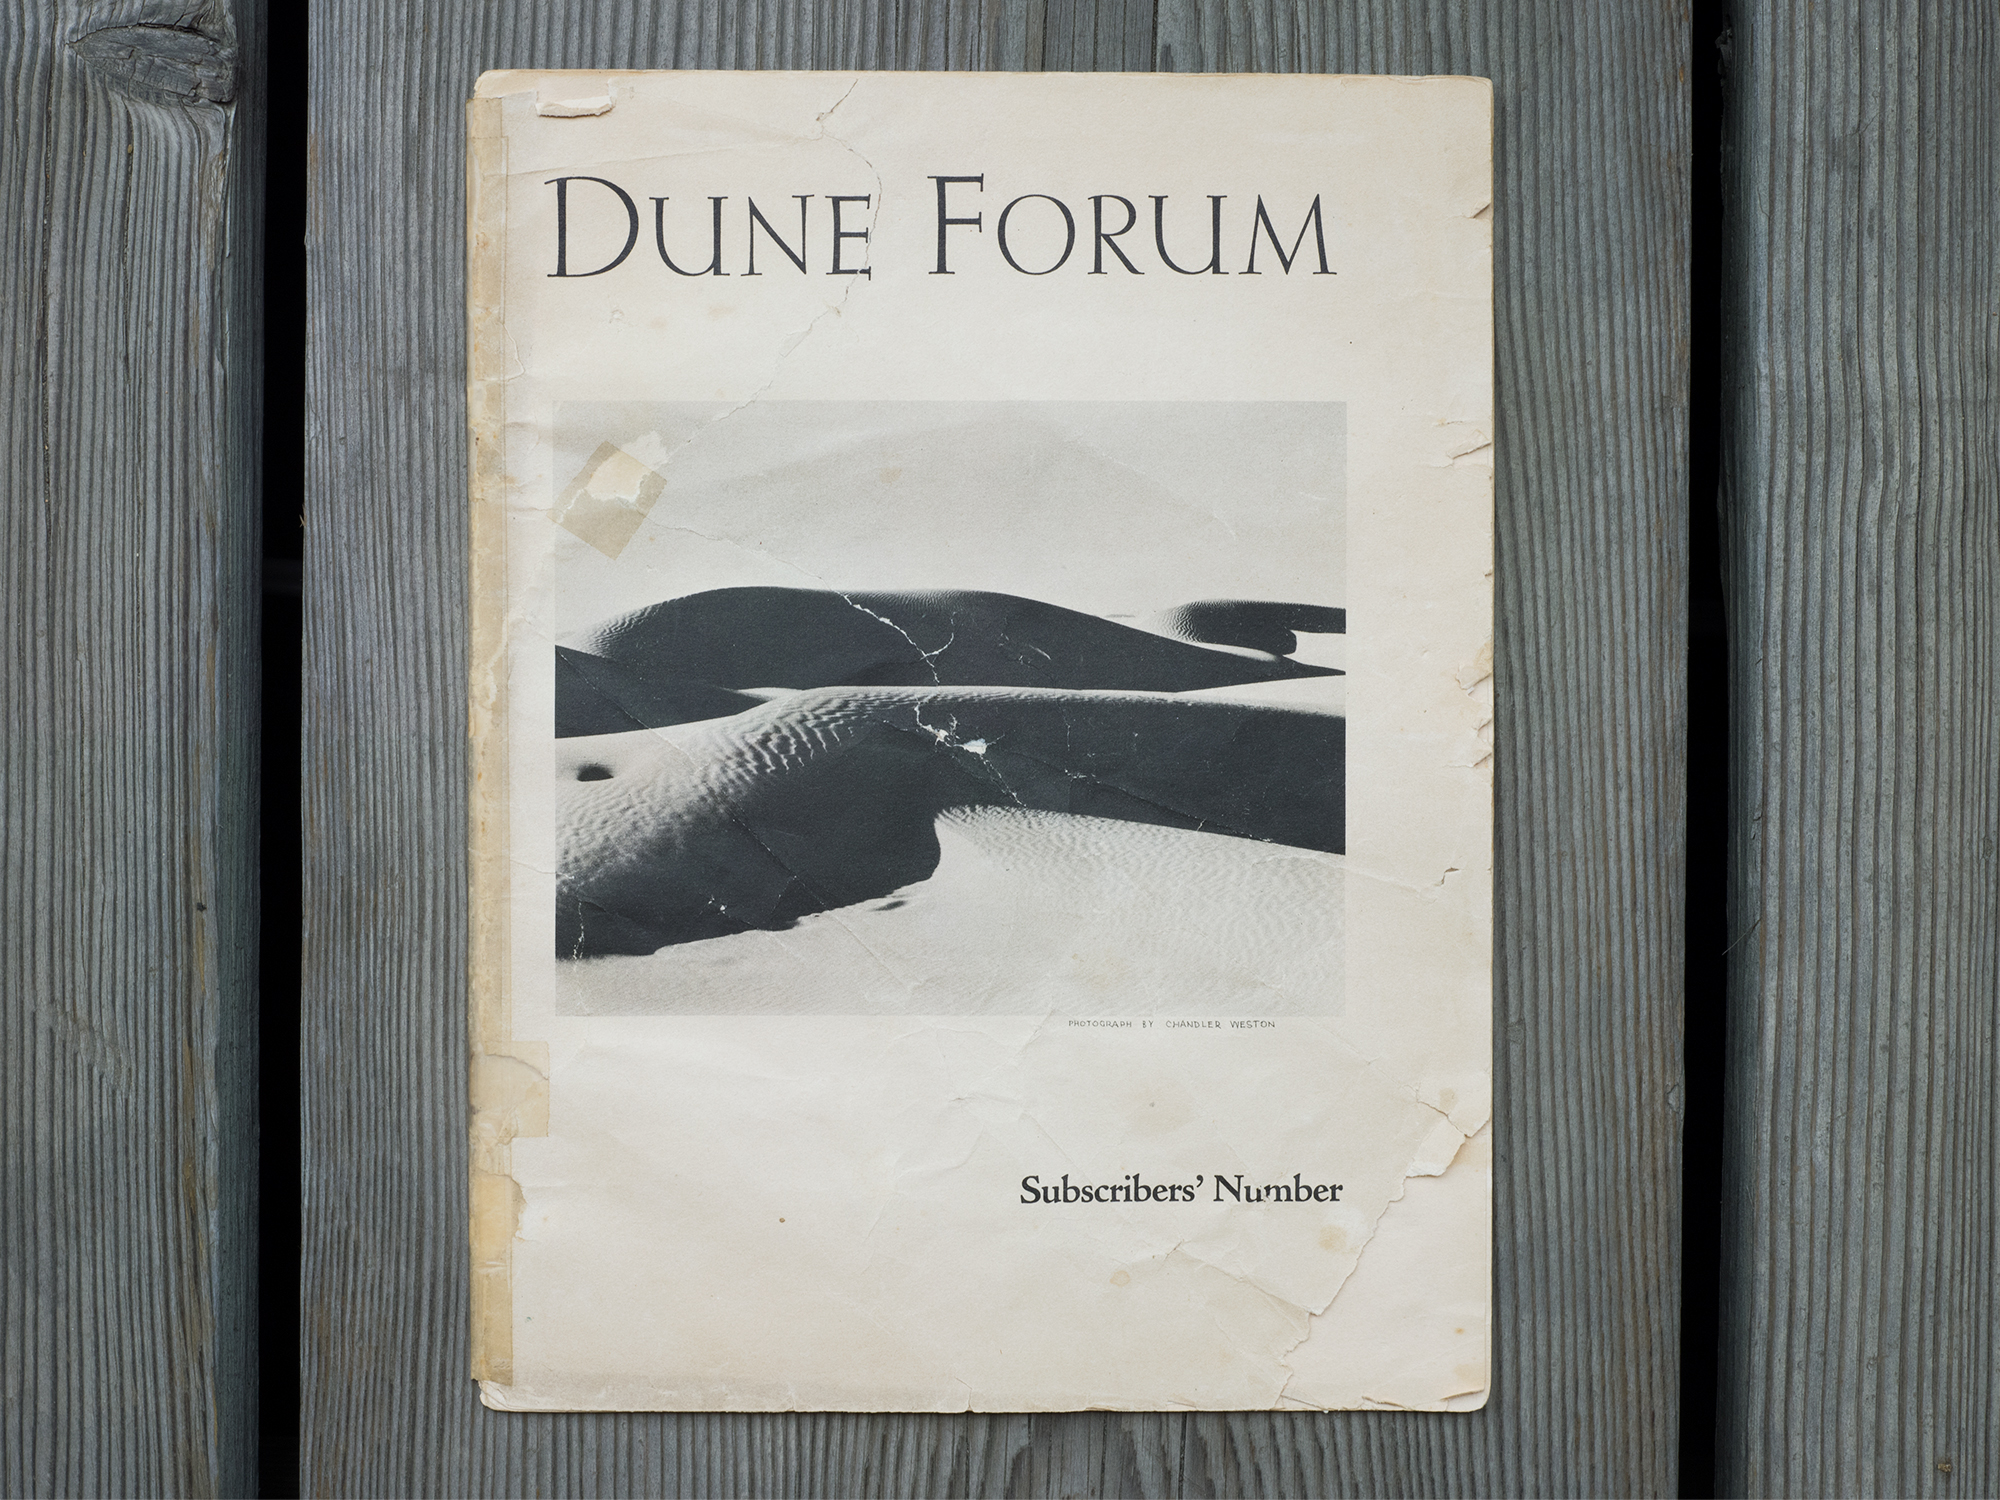 "First Issue of Dune Forum at the Oceano Depot, Oceano, CA, 20"" x 15"", Archival Pigment Print, 2018"